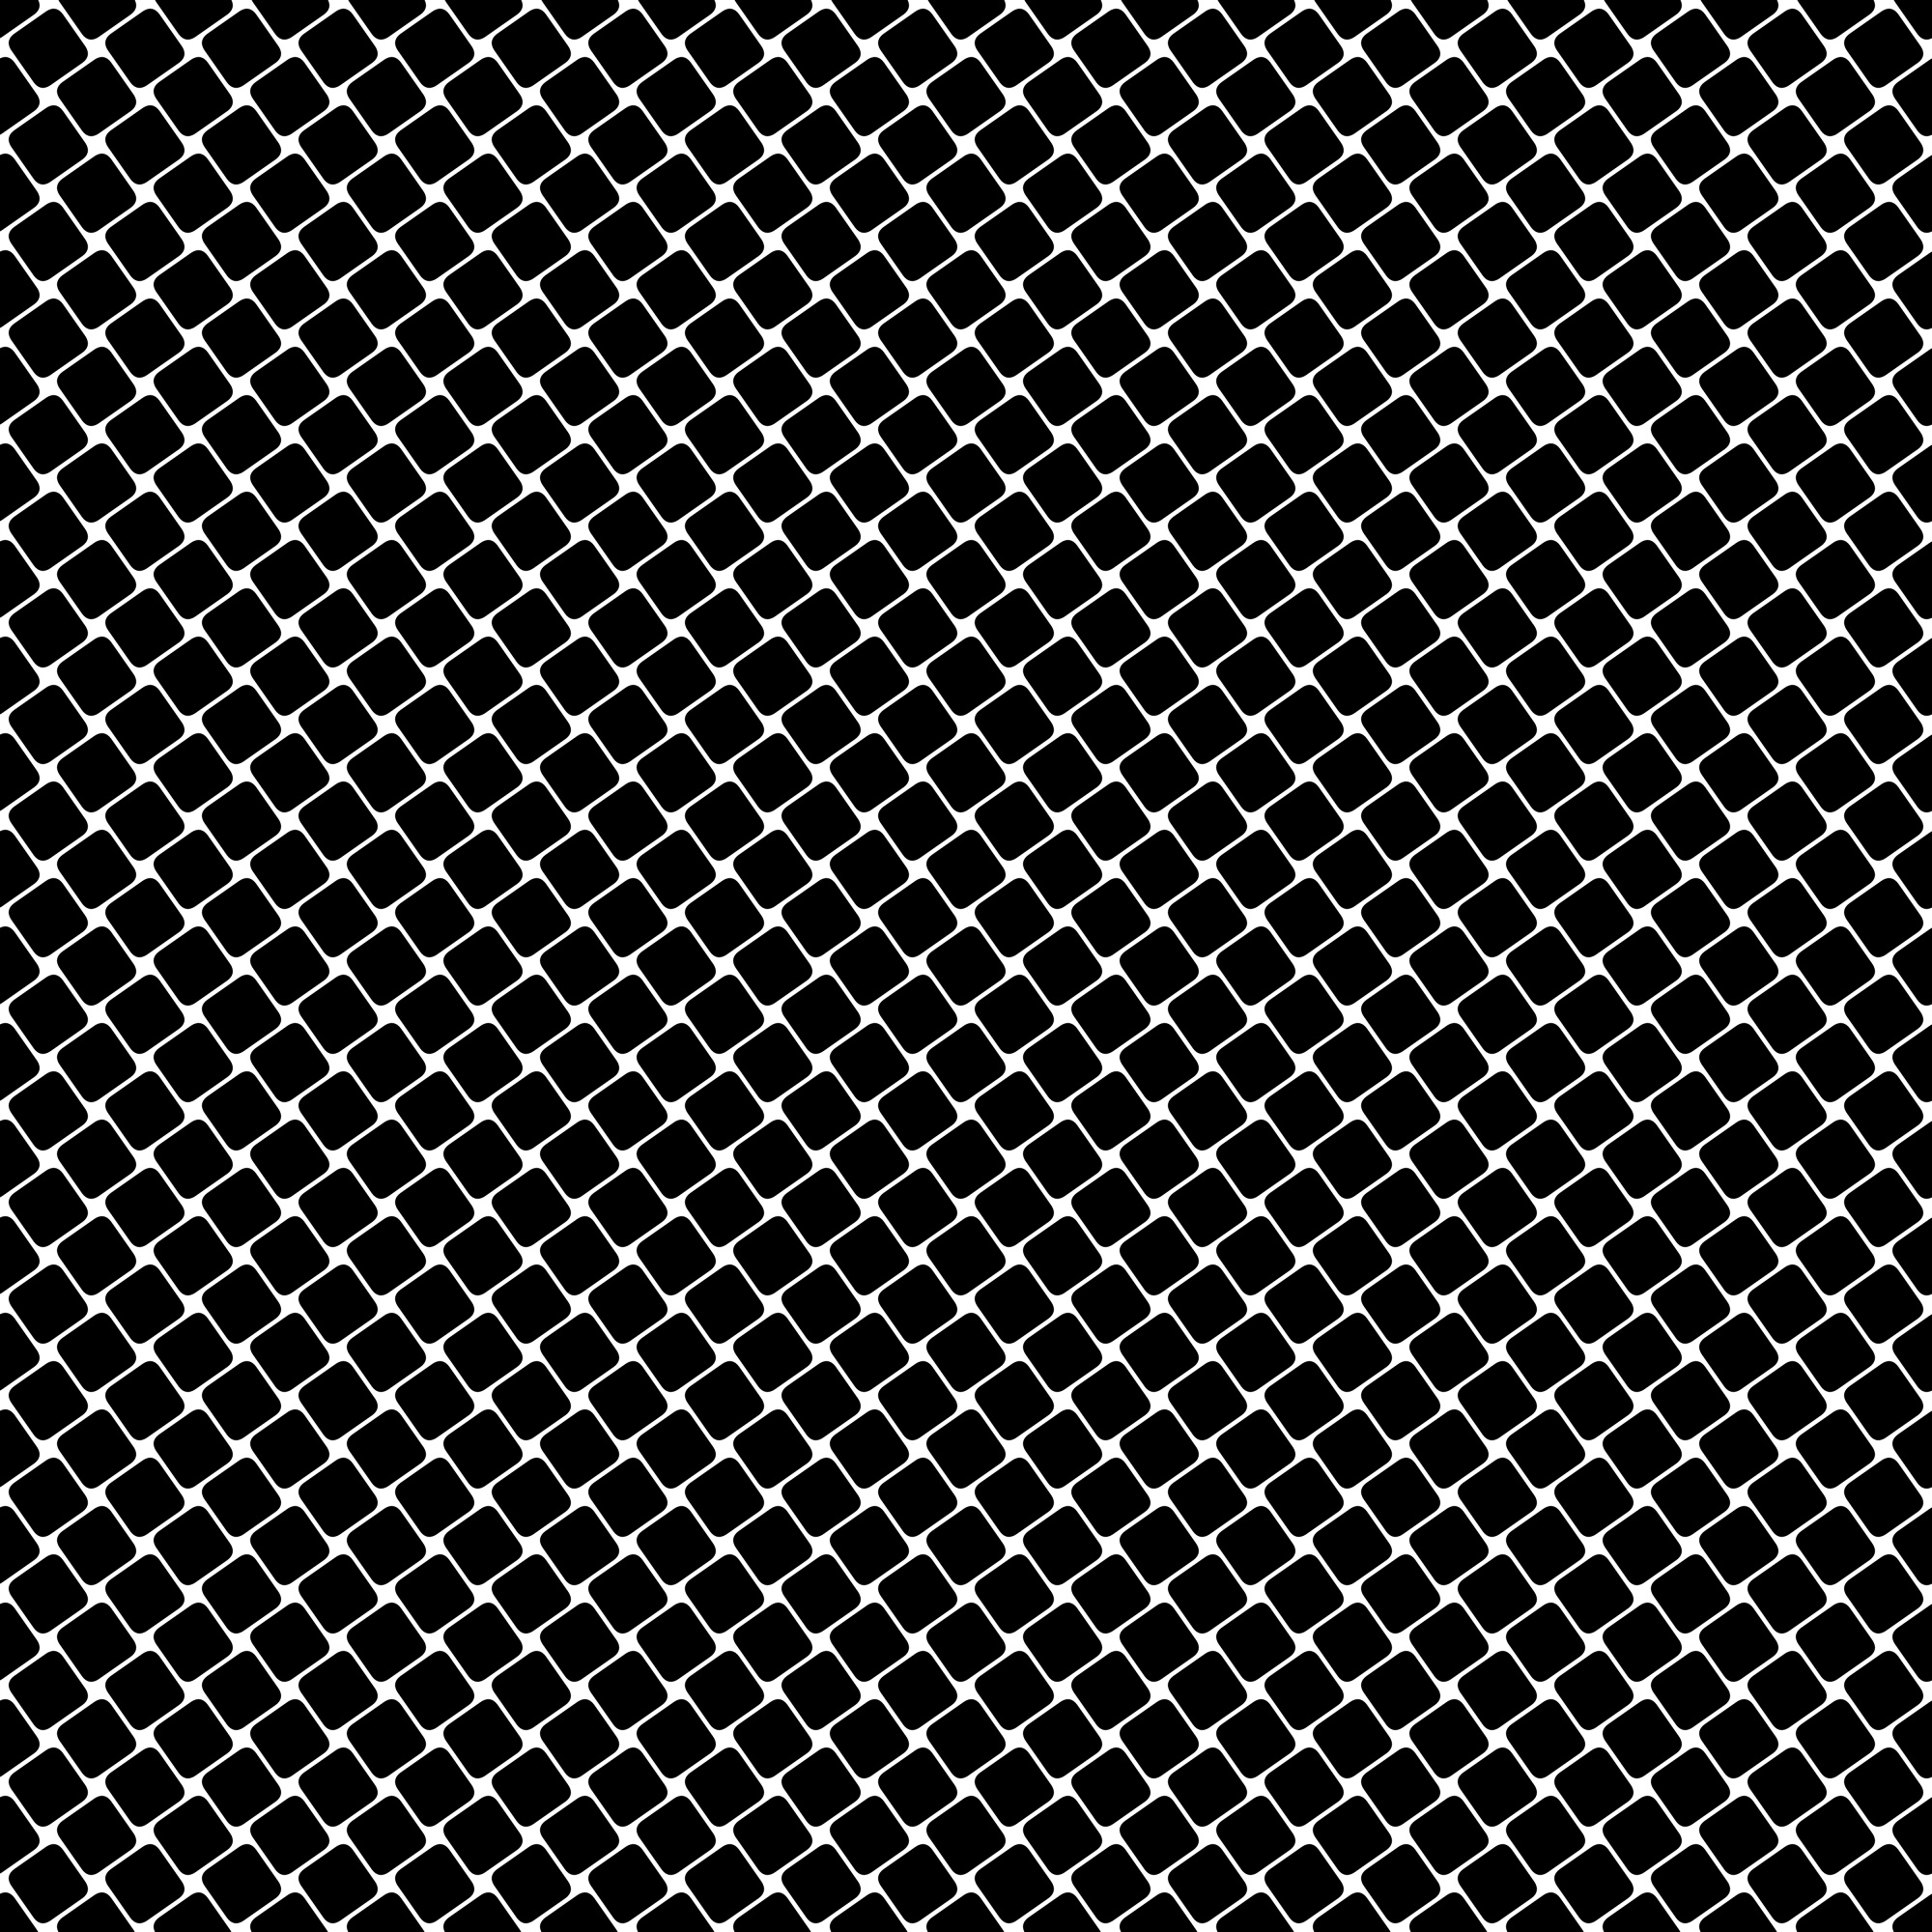 Black and white square pattern - geometrical vector background